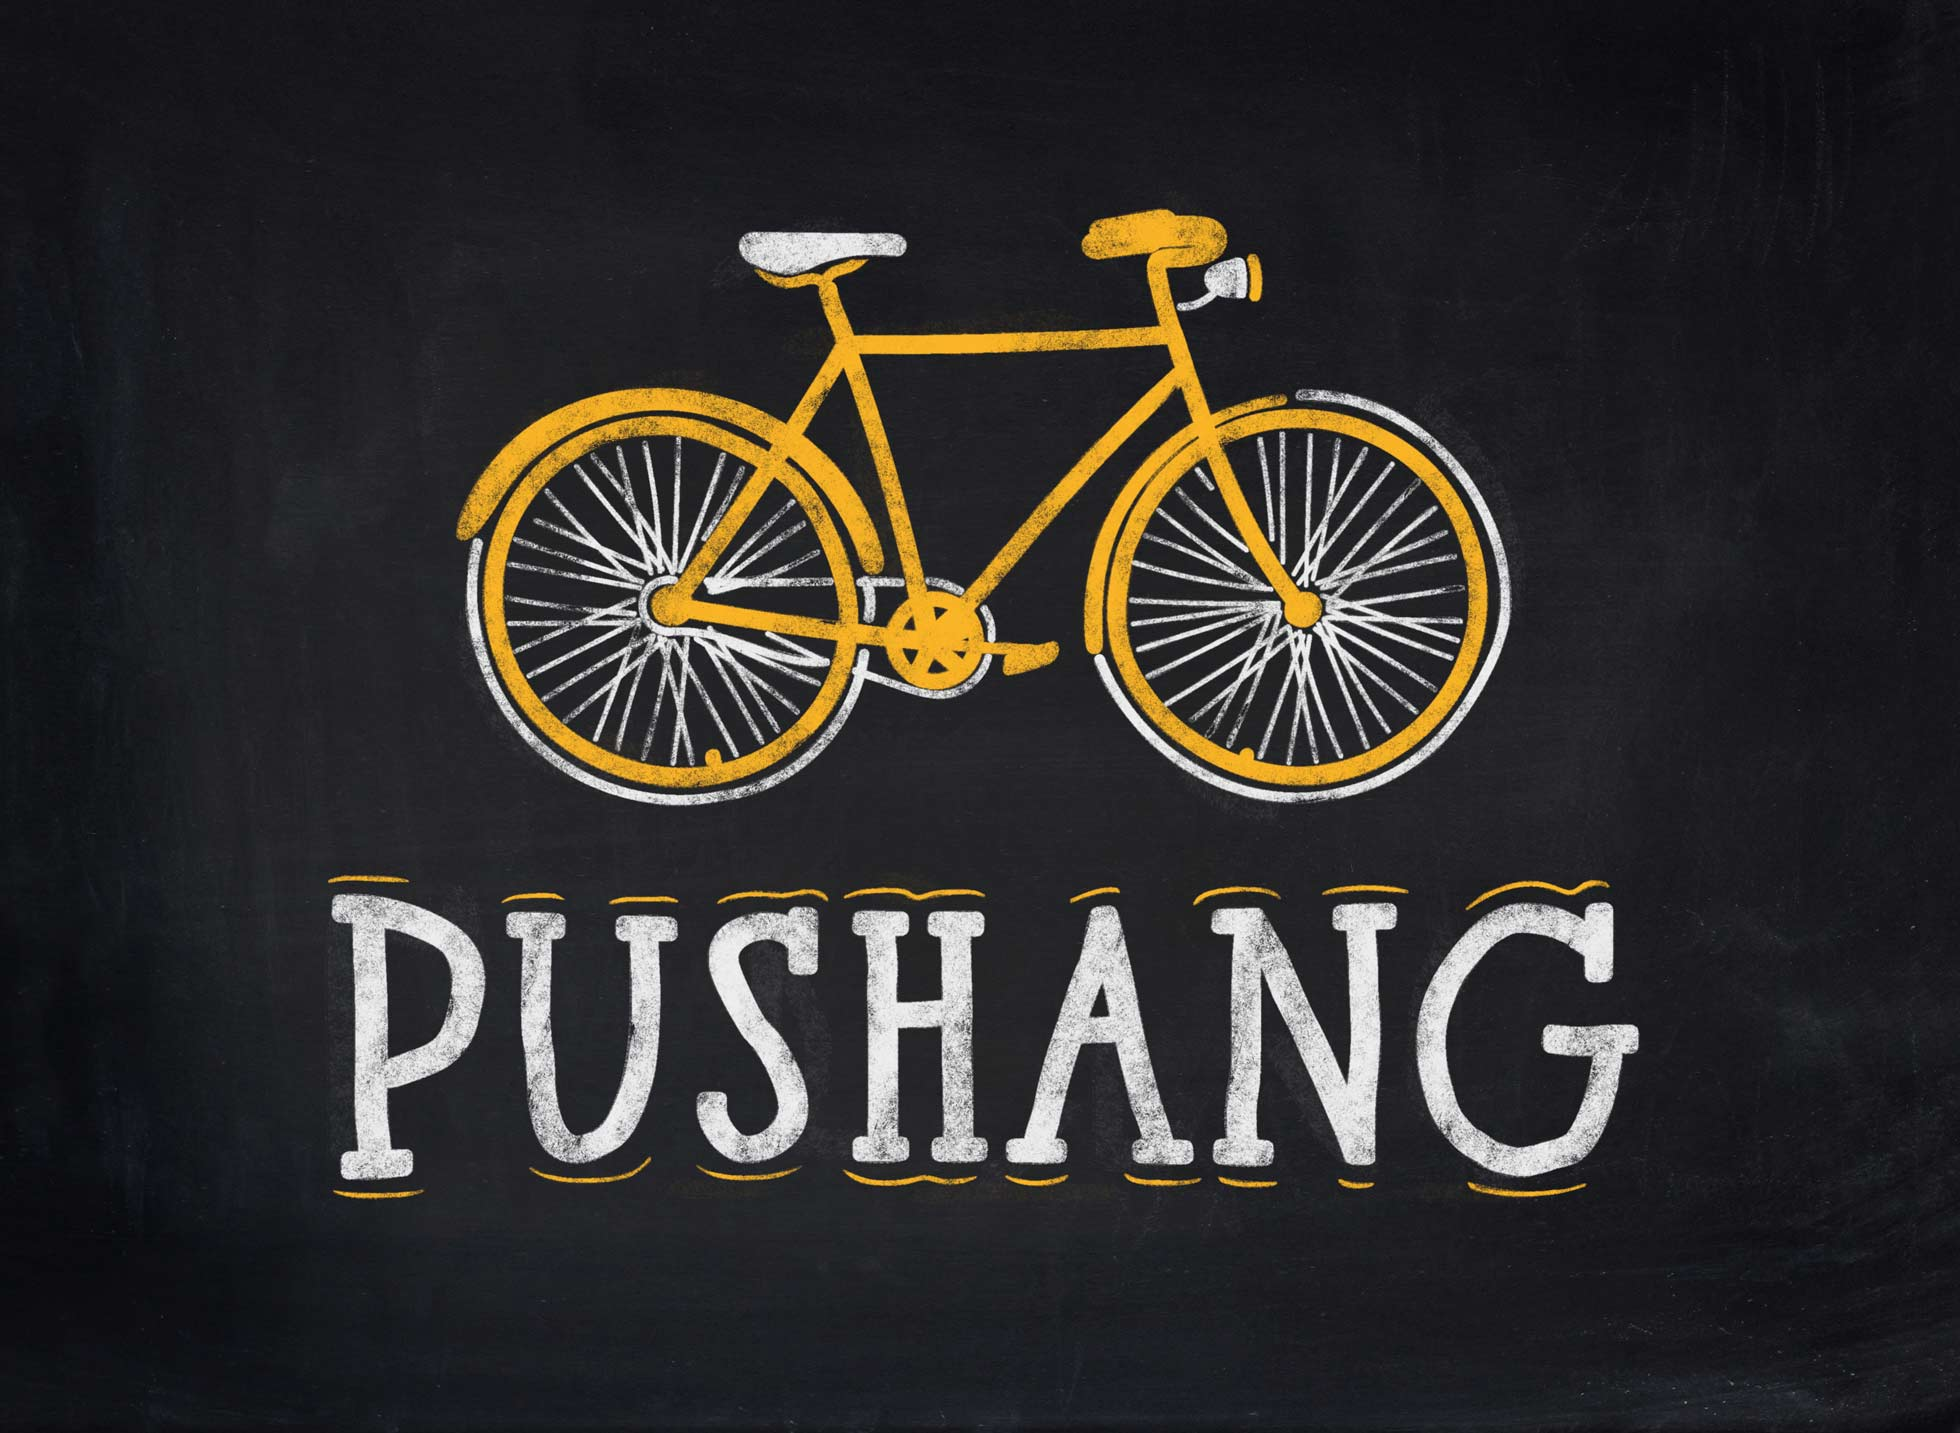 Pushang, the Guernsey name for bicycles, beer logo